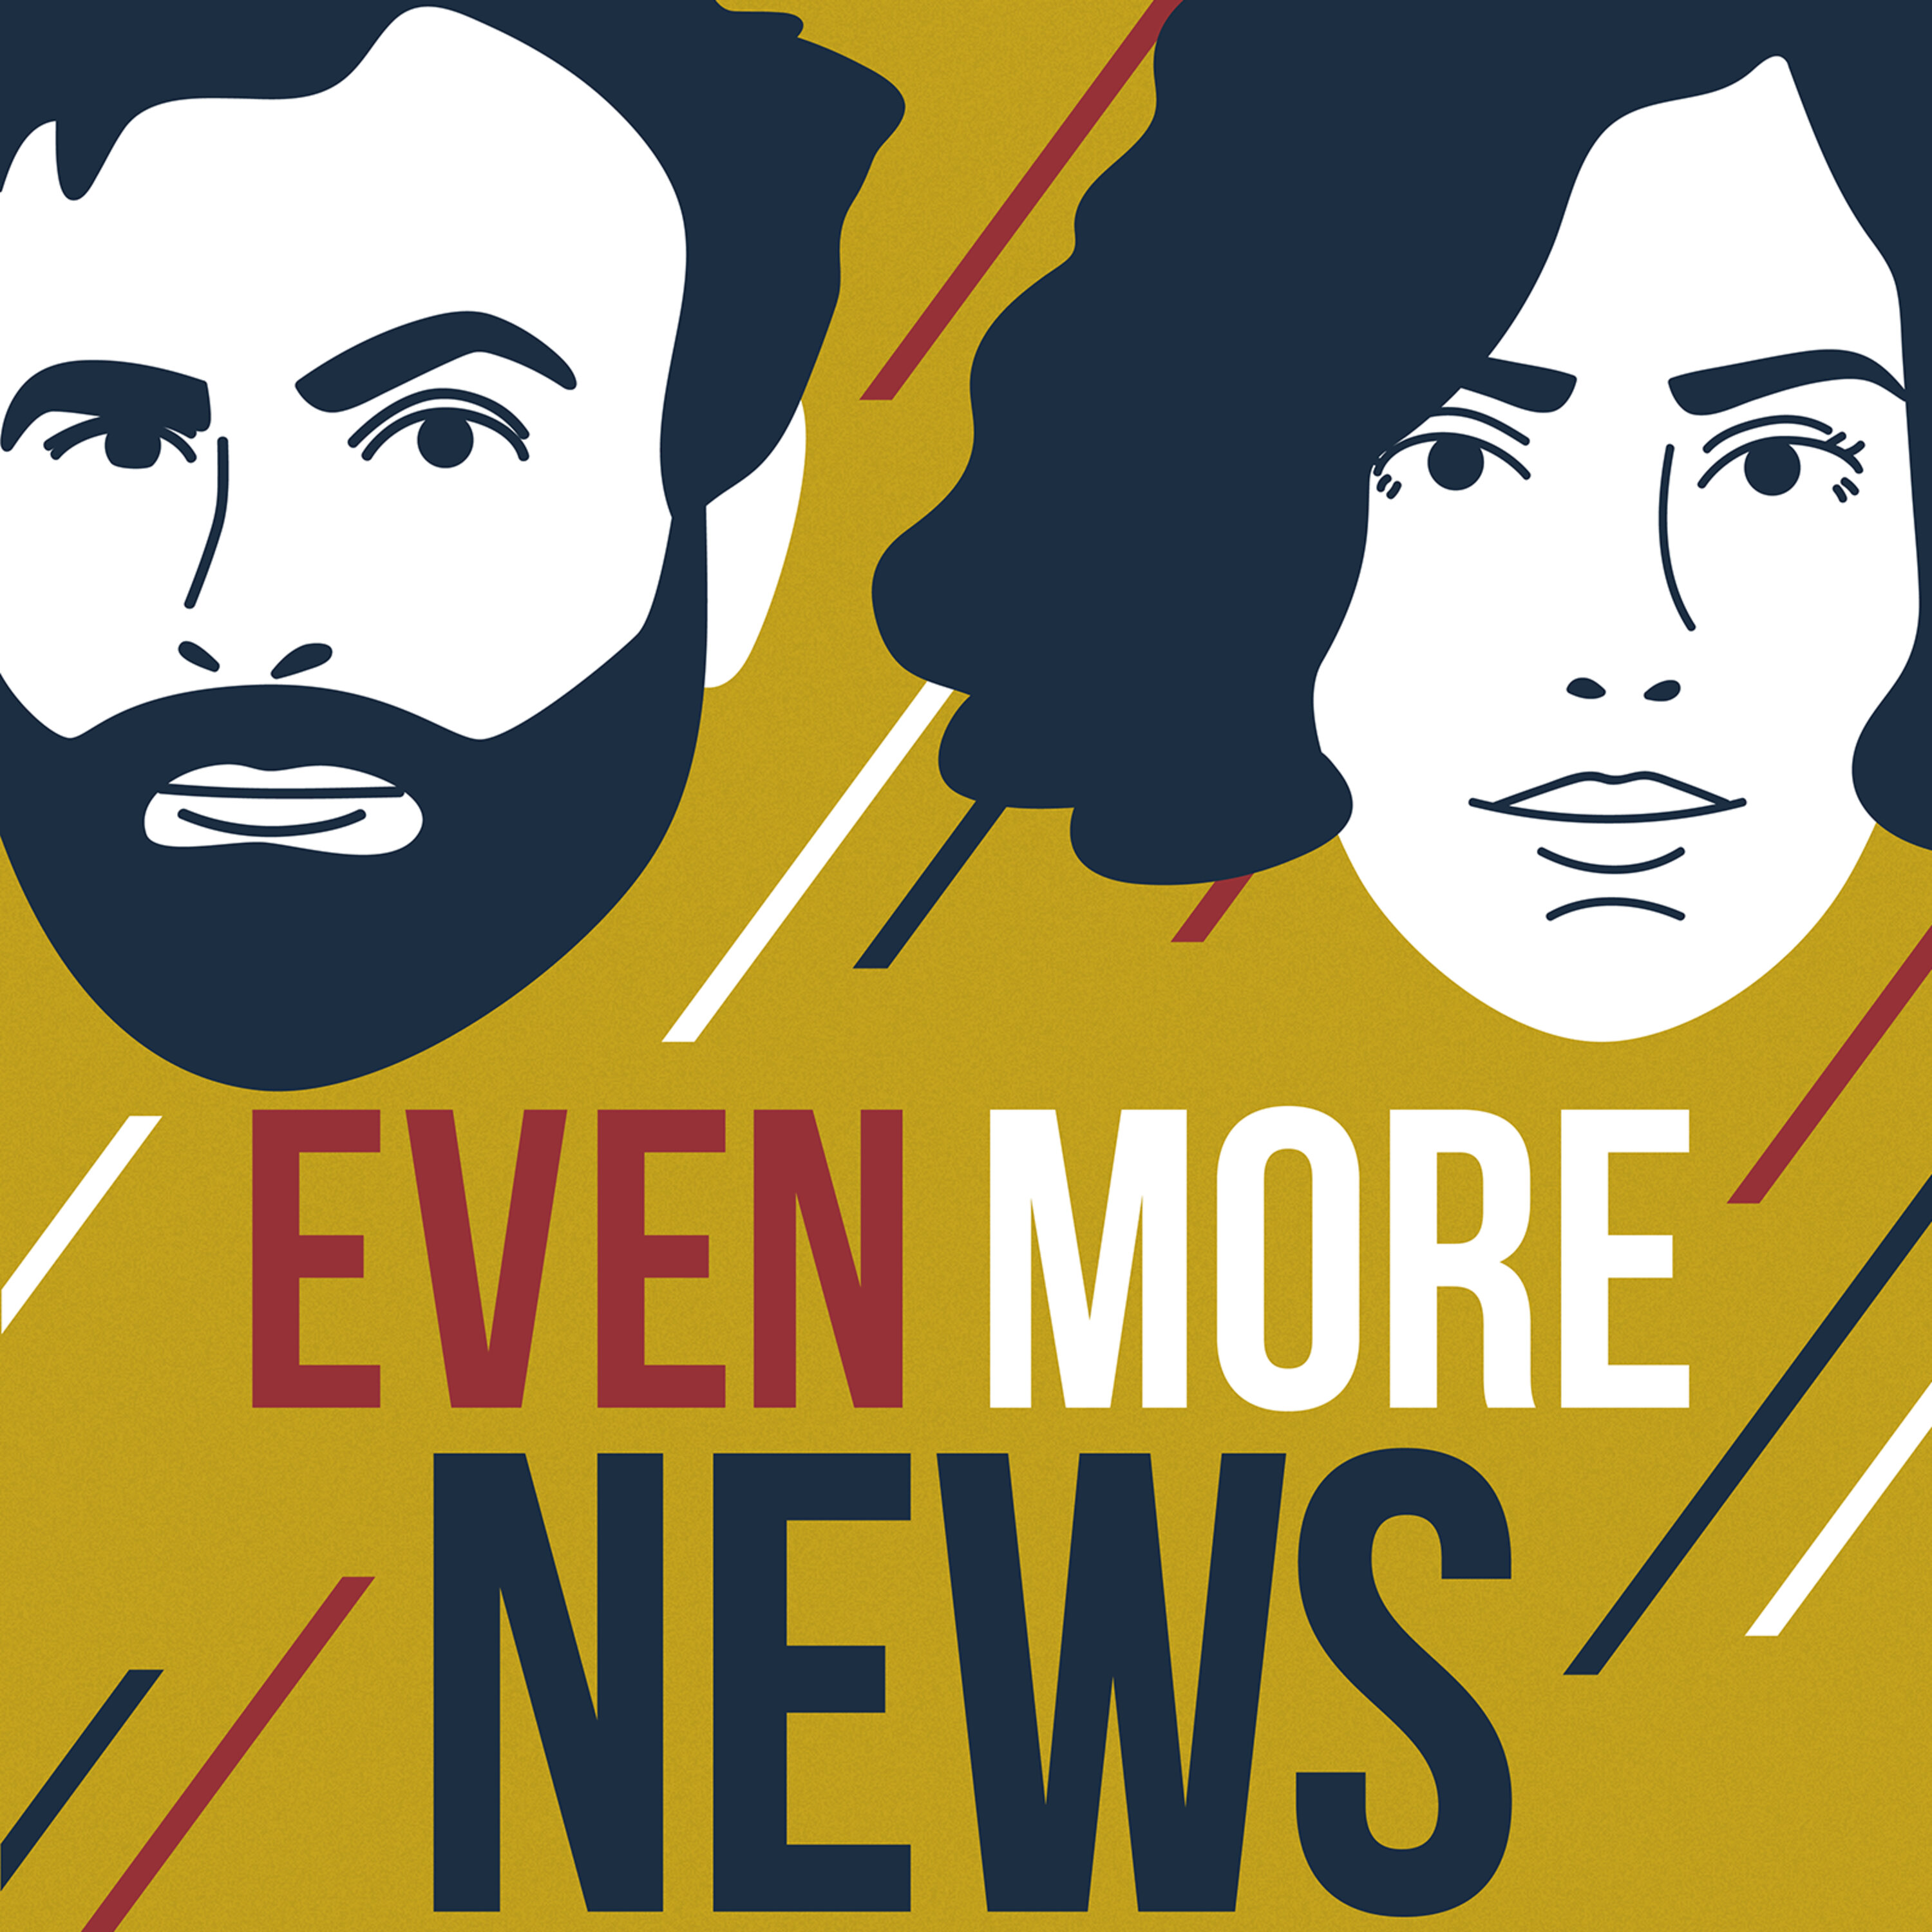 Texas v. Women, Climate v. People, and Even More News w/Mohanad Elshieky